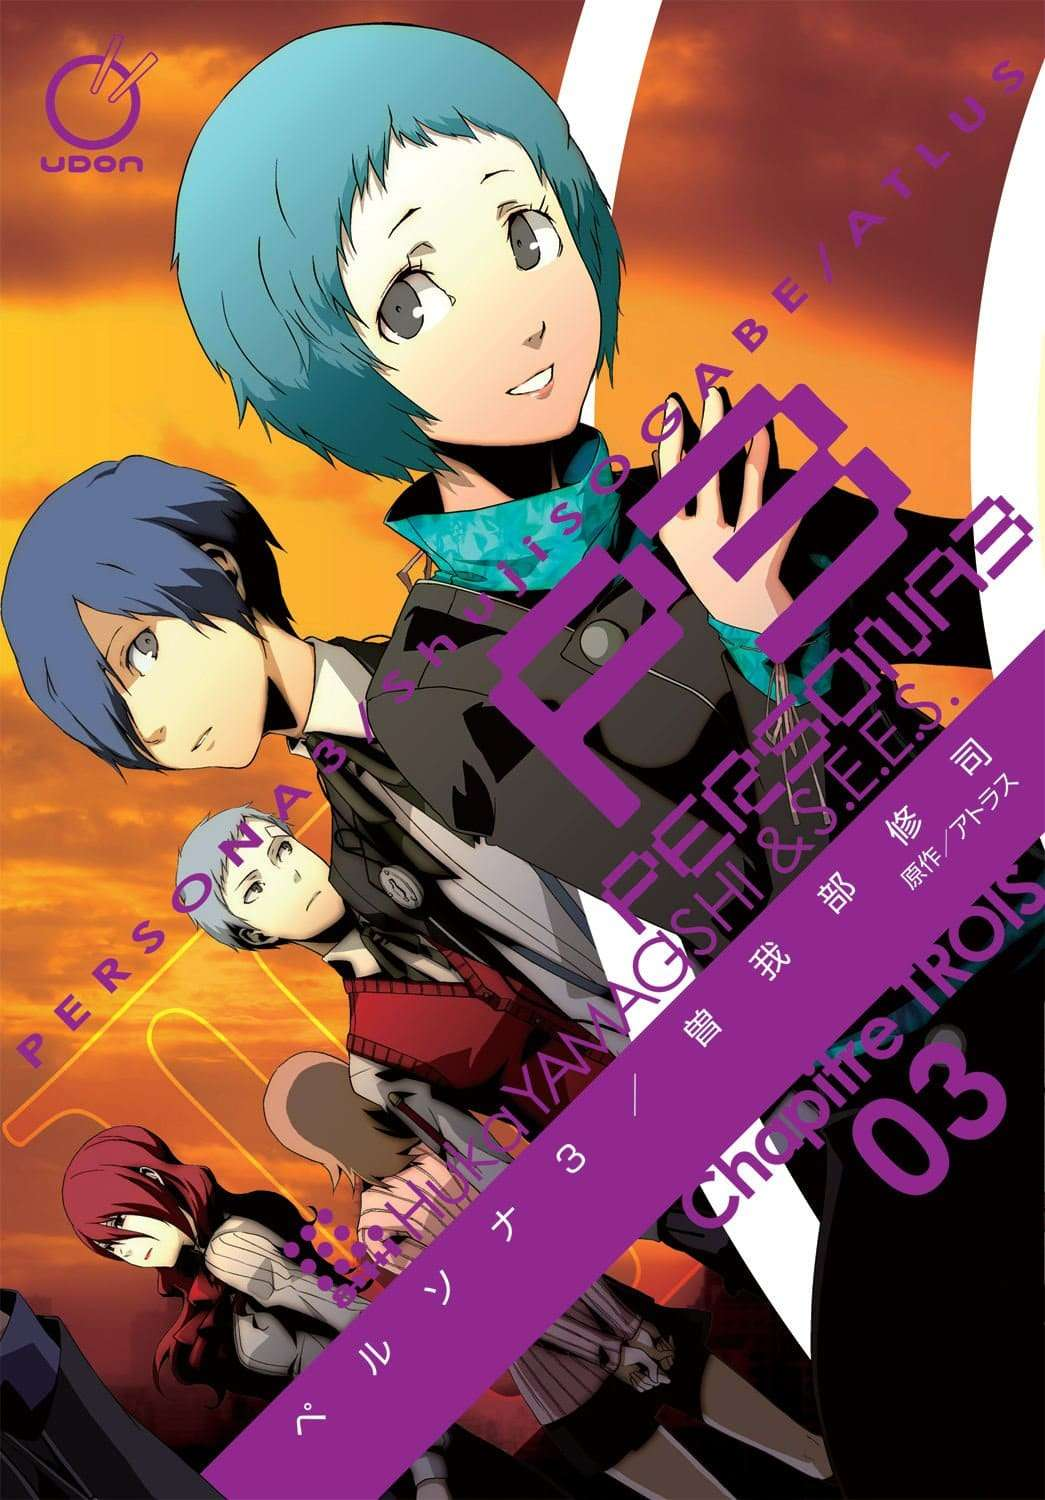 English Releases for Persona 4 Manga Vol  5-6, Persona 3